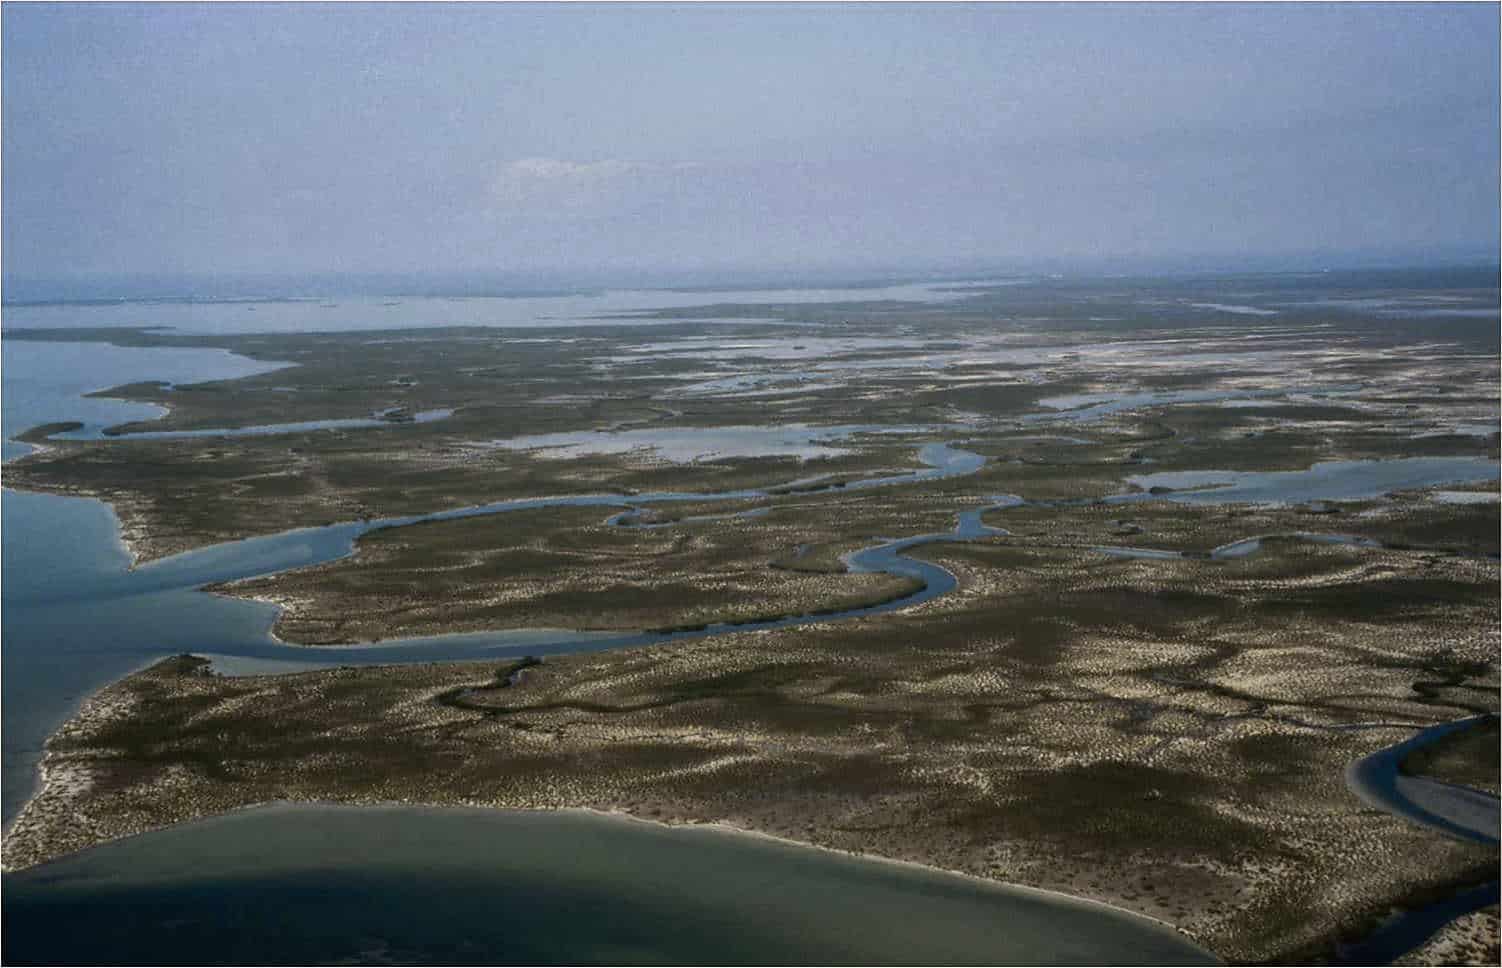 Part of the wetland complex and Ramsar site in the Turks and Caicos Islands; Copyright: Dr Mike Pienkowski